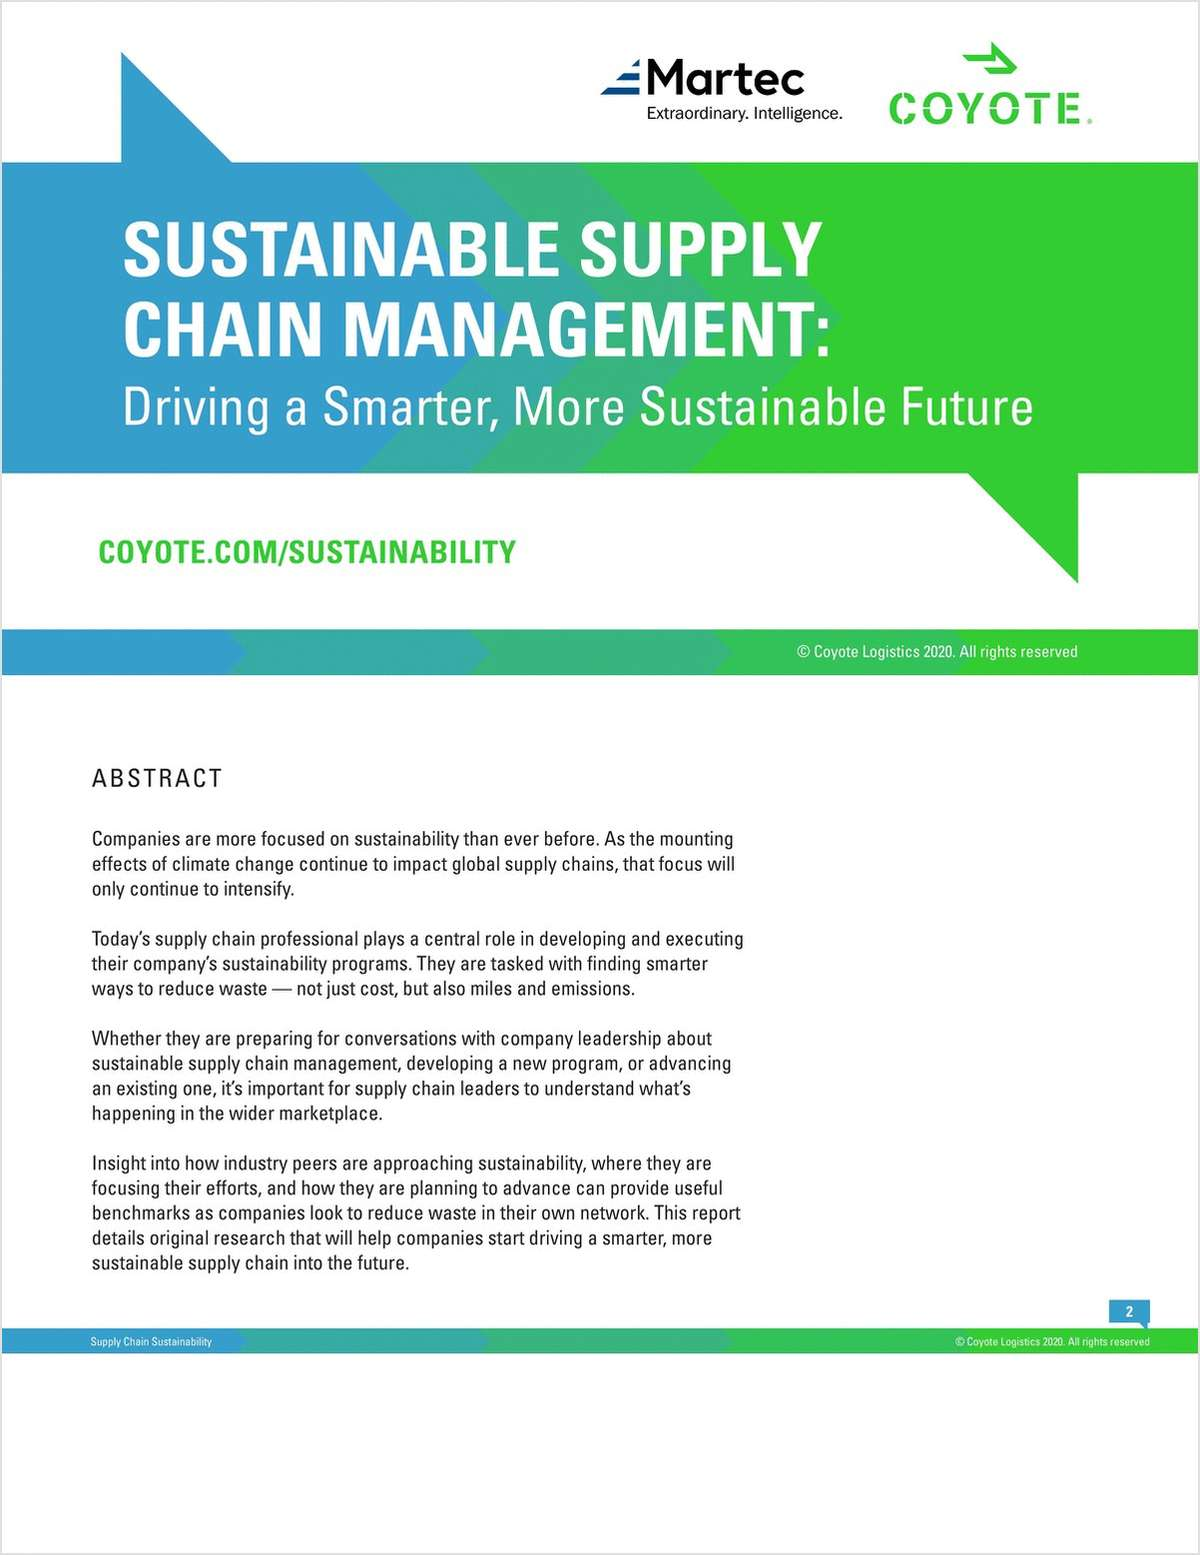 Building Sustainable Supply Chains: Original Research to Help Supply Chain Professionals Reduce Waste and Improve Sustainability